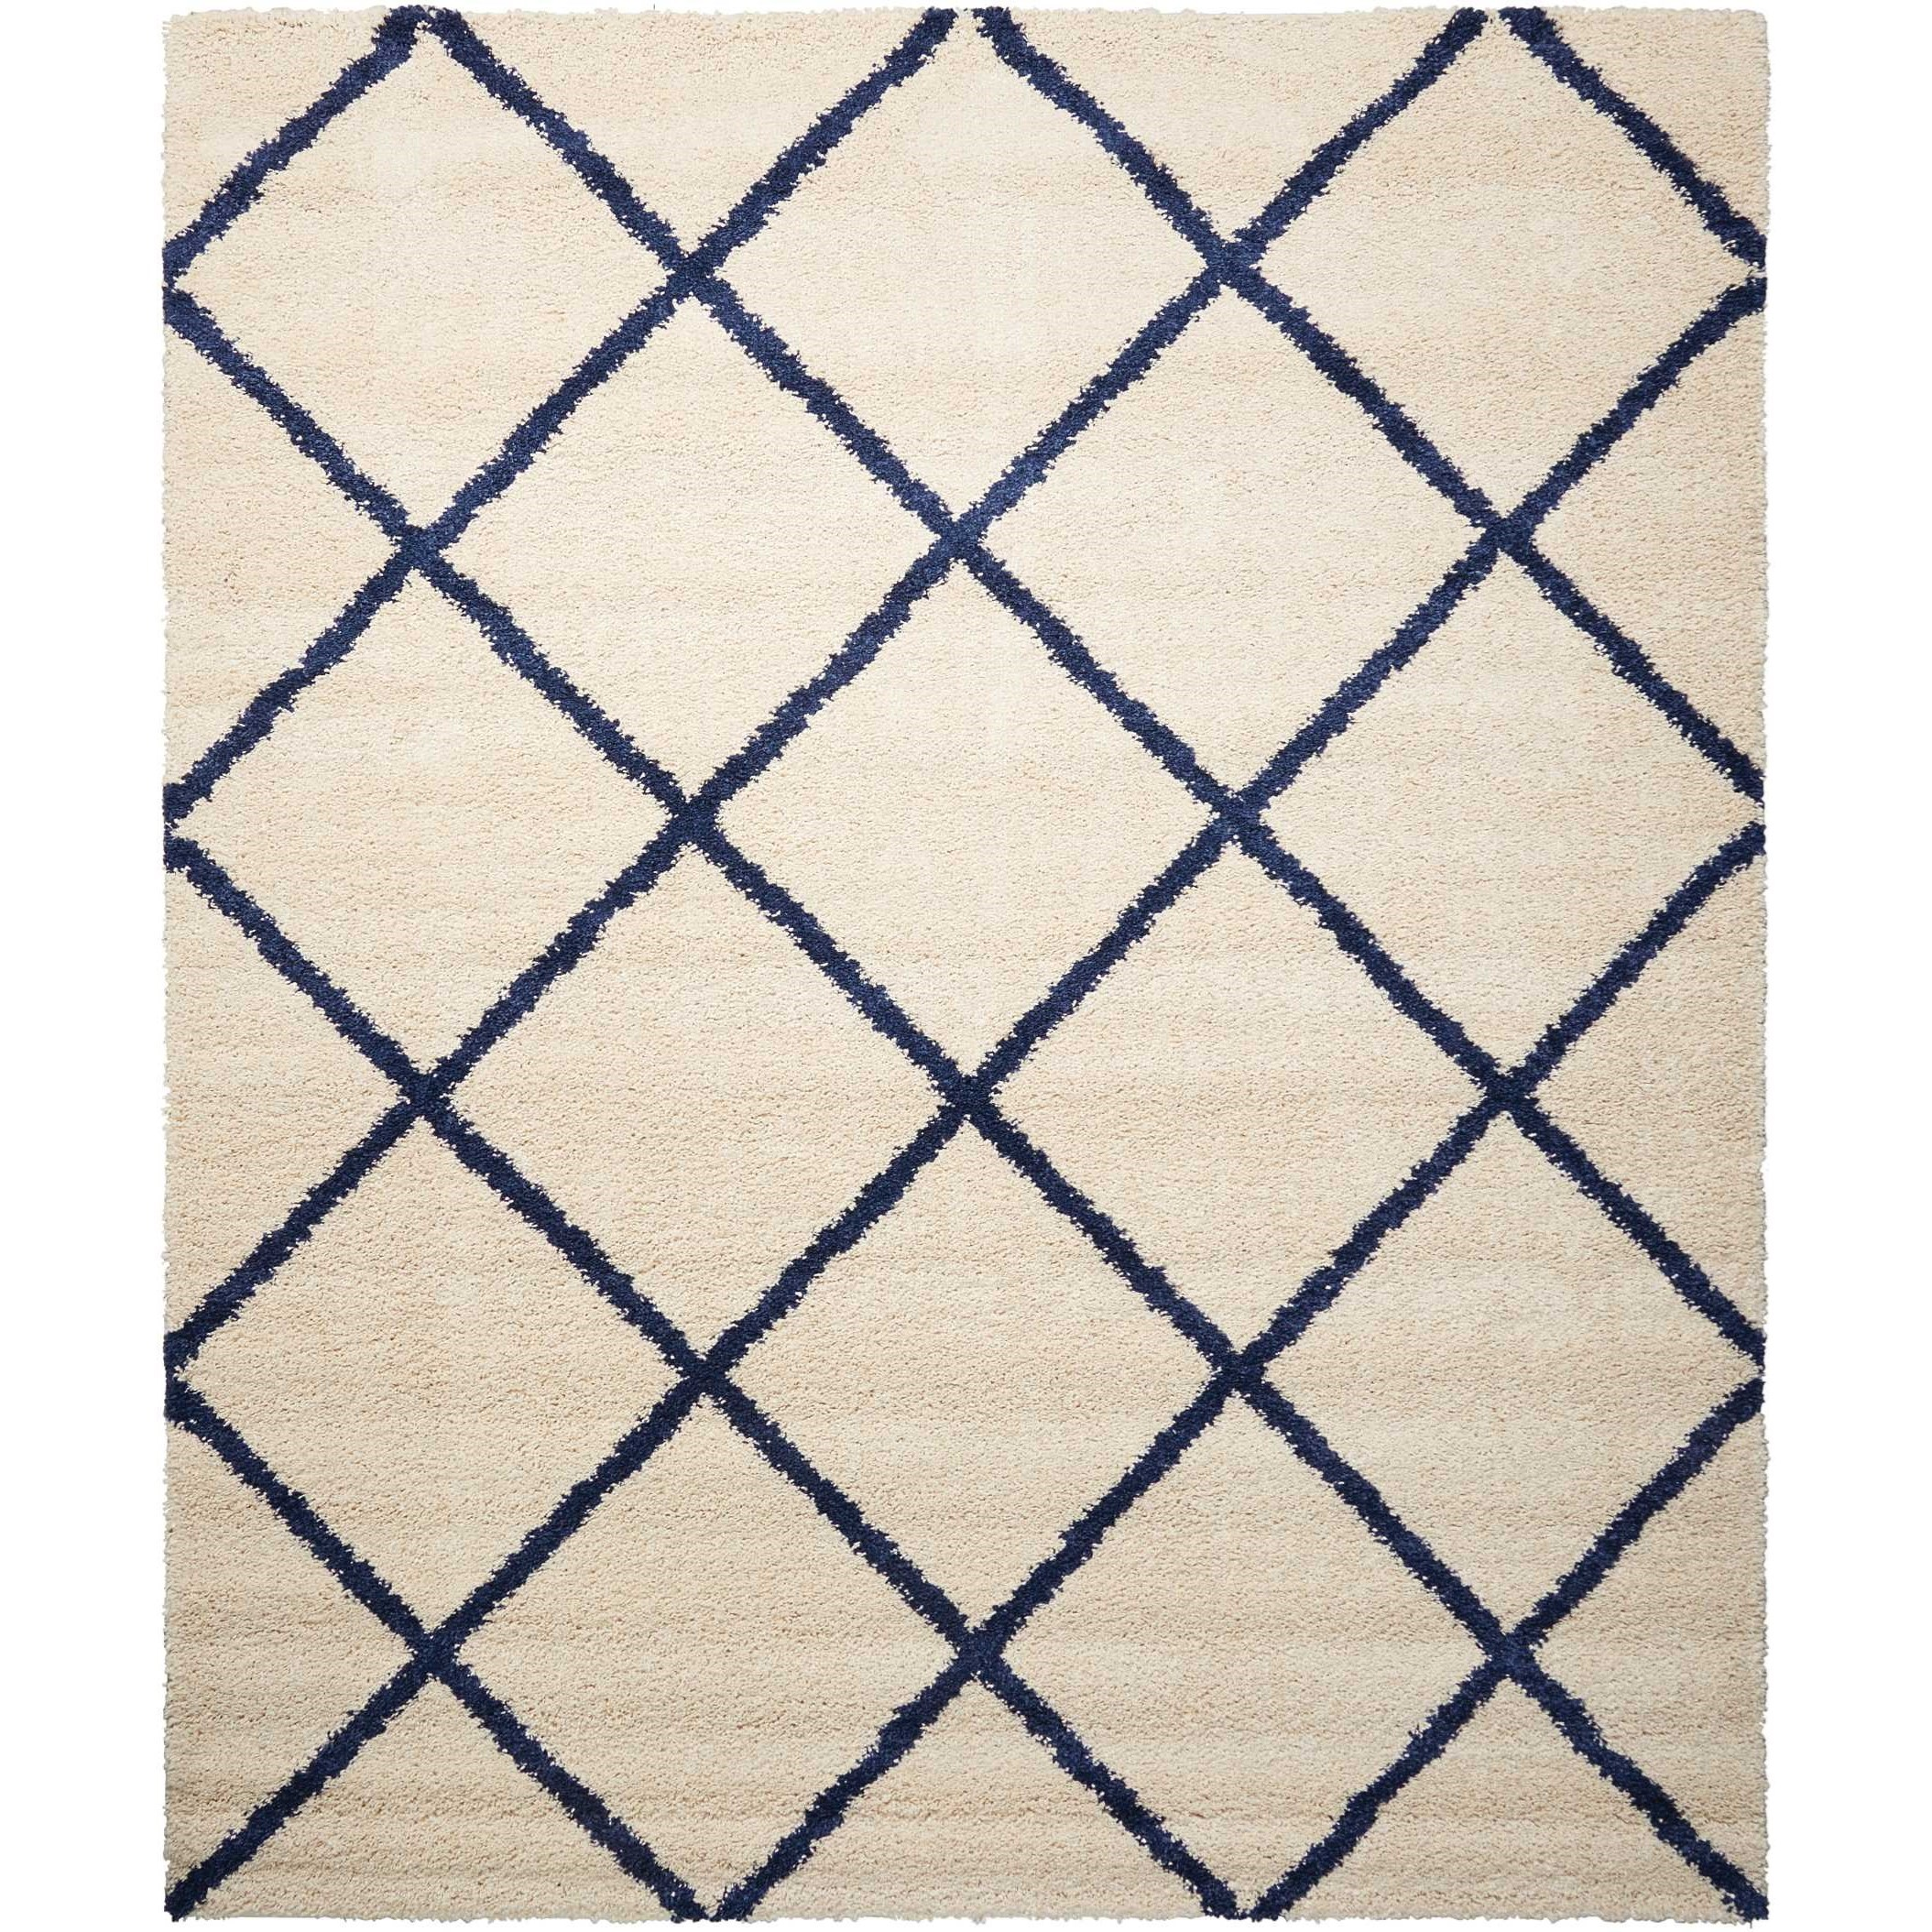 "Brisbane 8'2"" x 10' Ivory/Blue Rectangle Rug by Nourison at Home Collections Furniture"